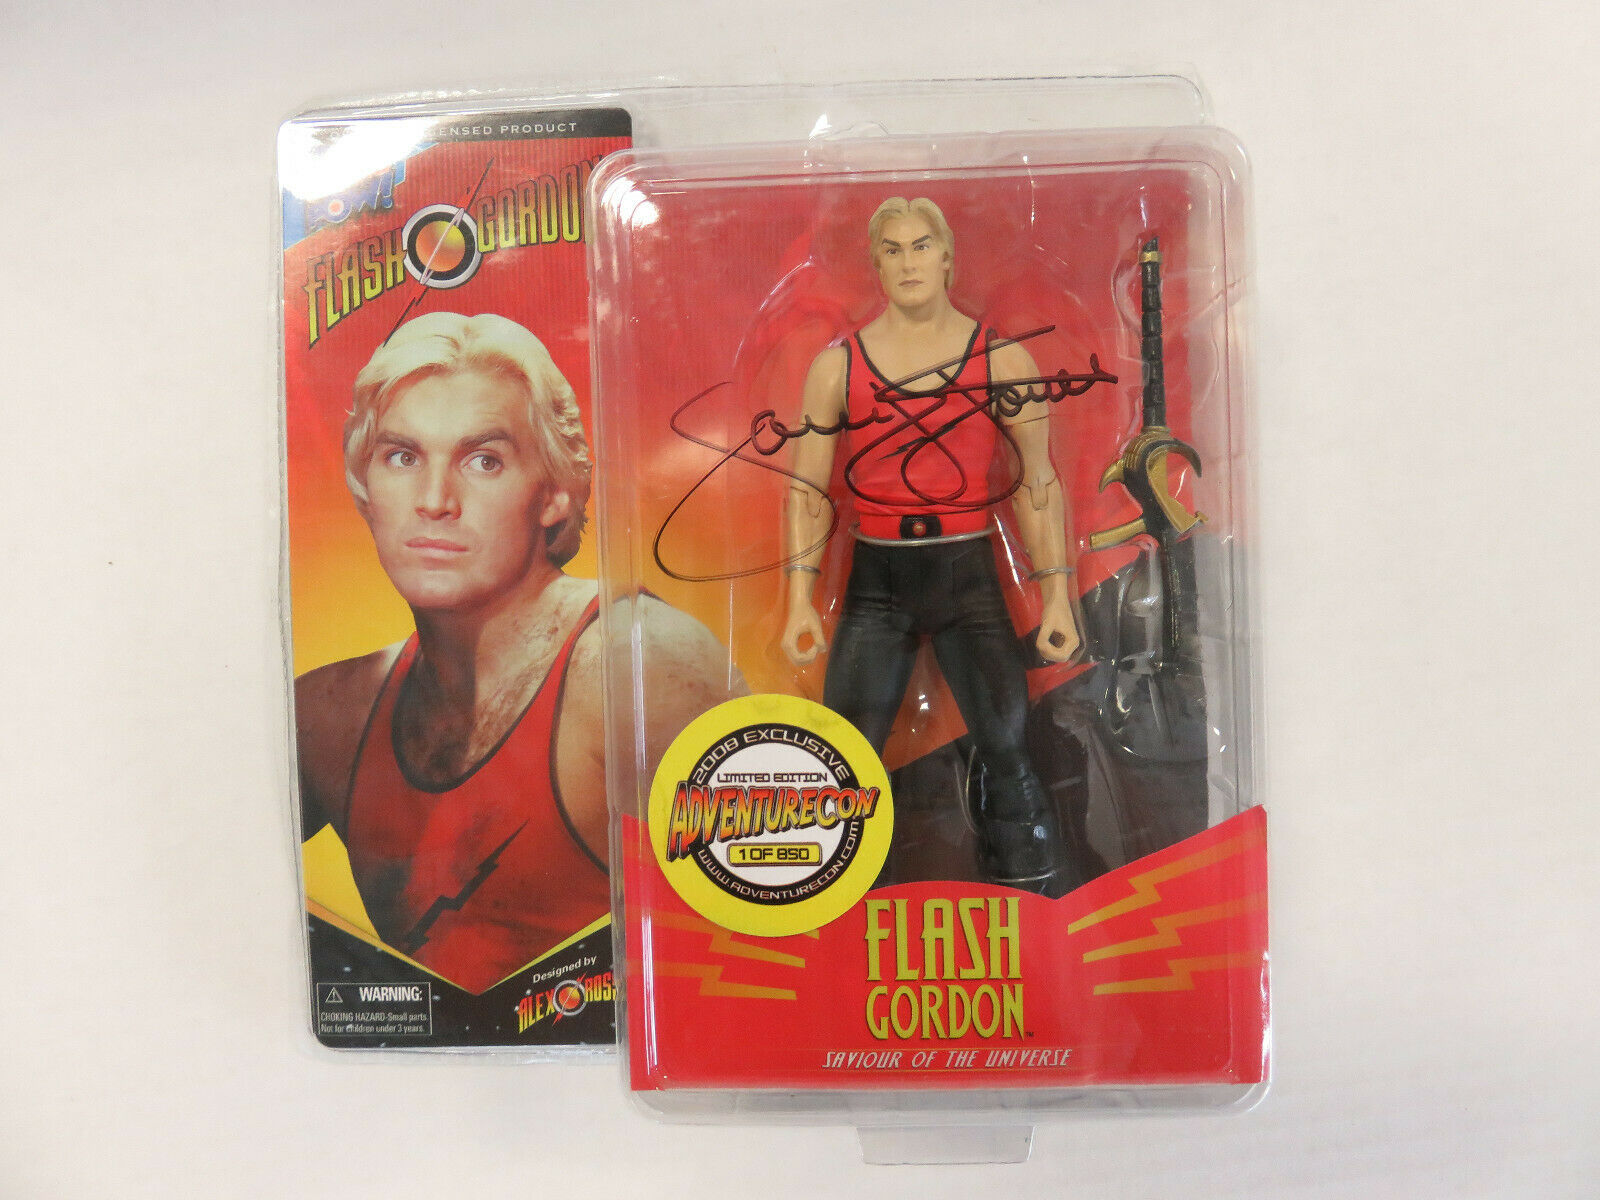 Flash Gordon 2008 firmado Sam J. Jones adventurecon Exclusivo -  nuevo  Alex Ross